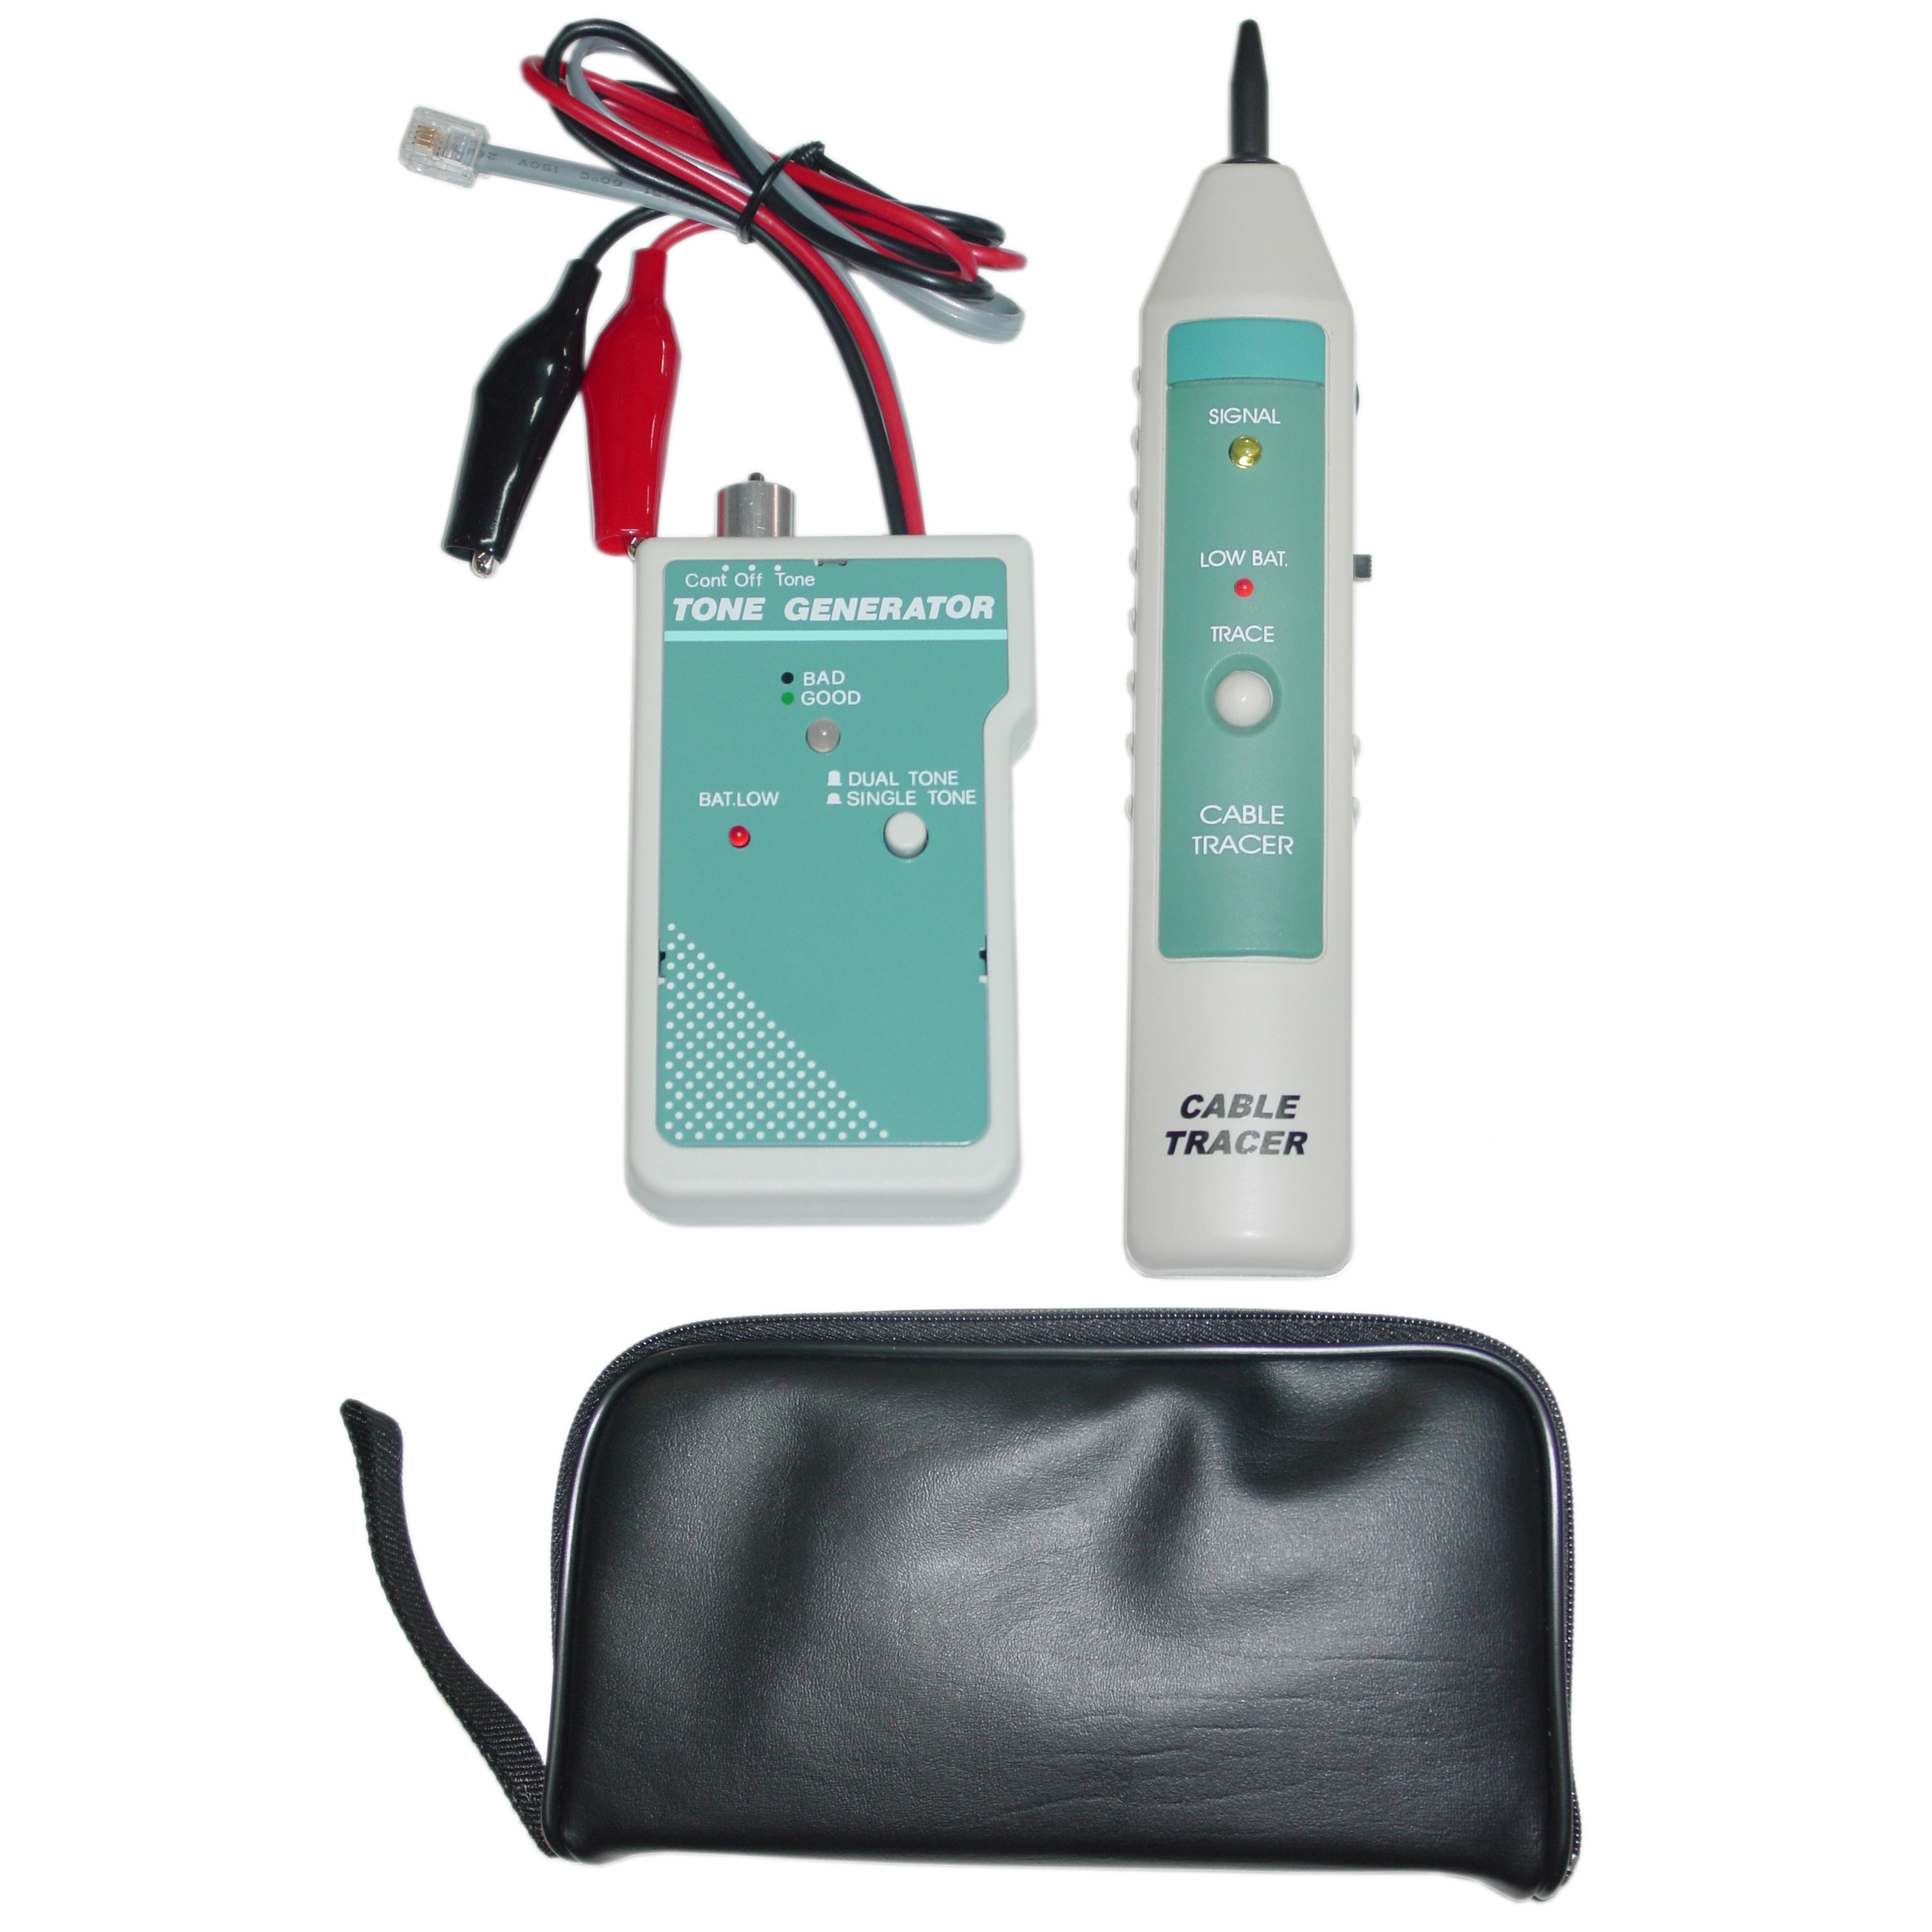 Tone Generator & Probe Kit, Network and Coaxial Cables